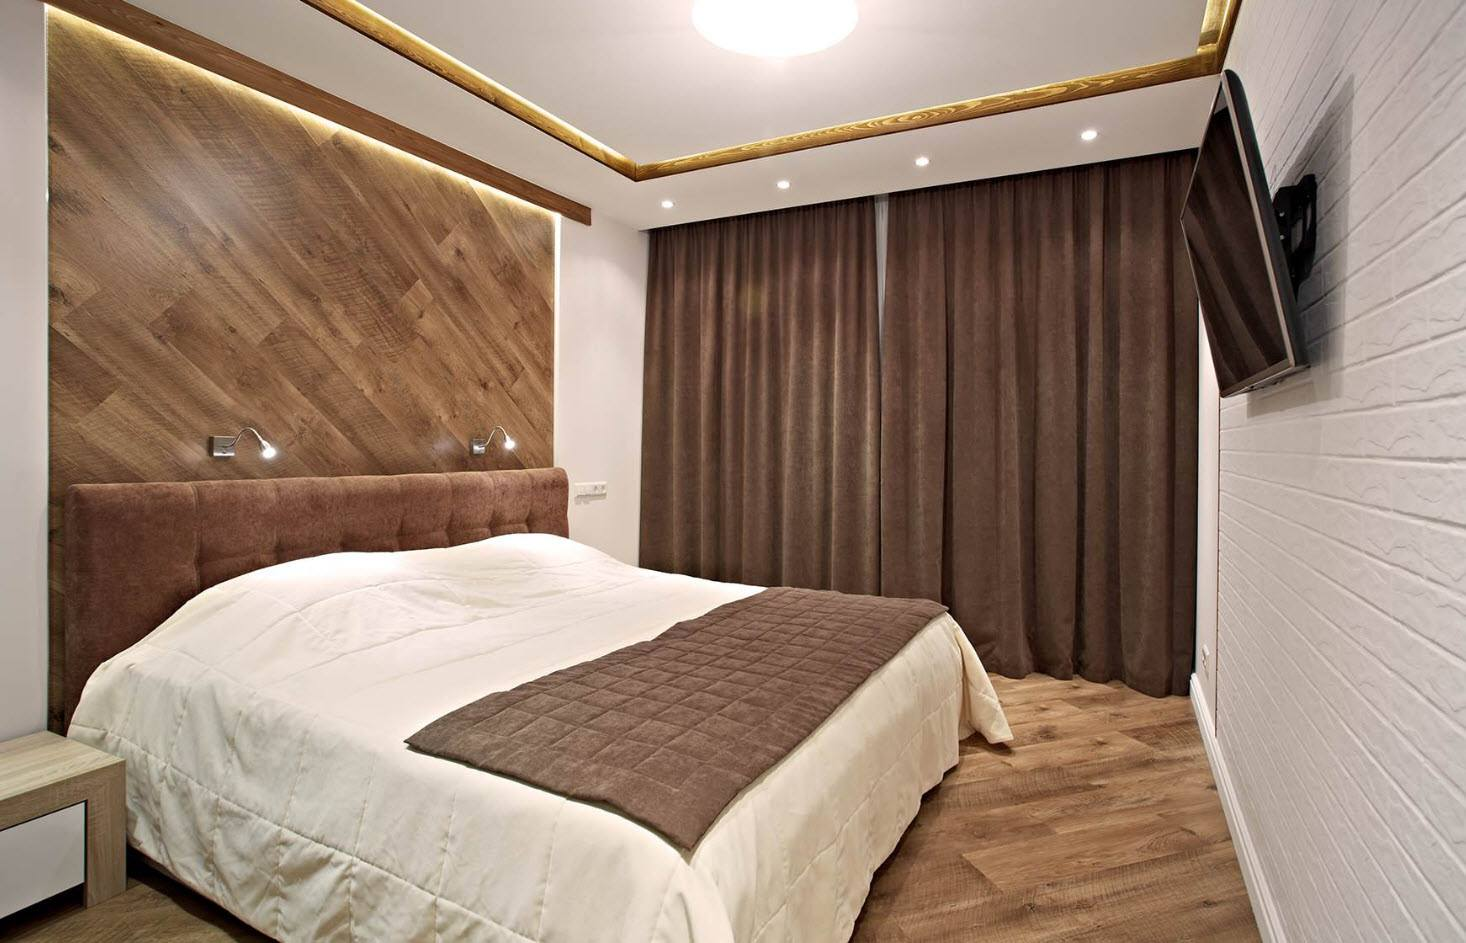 120 Square Feet Bedroom Interior Decoration Ideas. Brown designed room with white painted walls